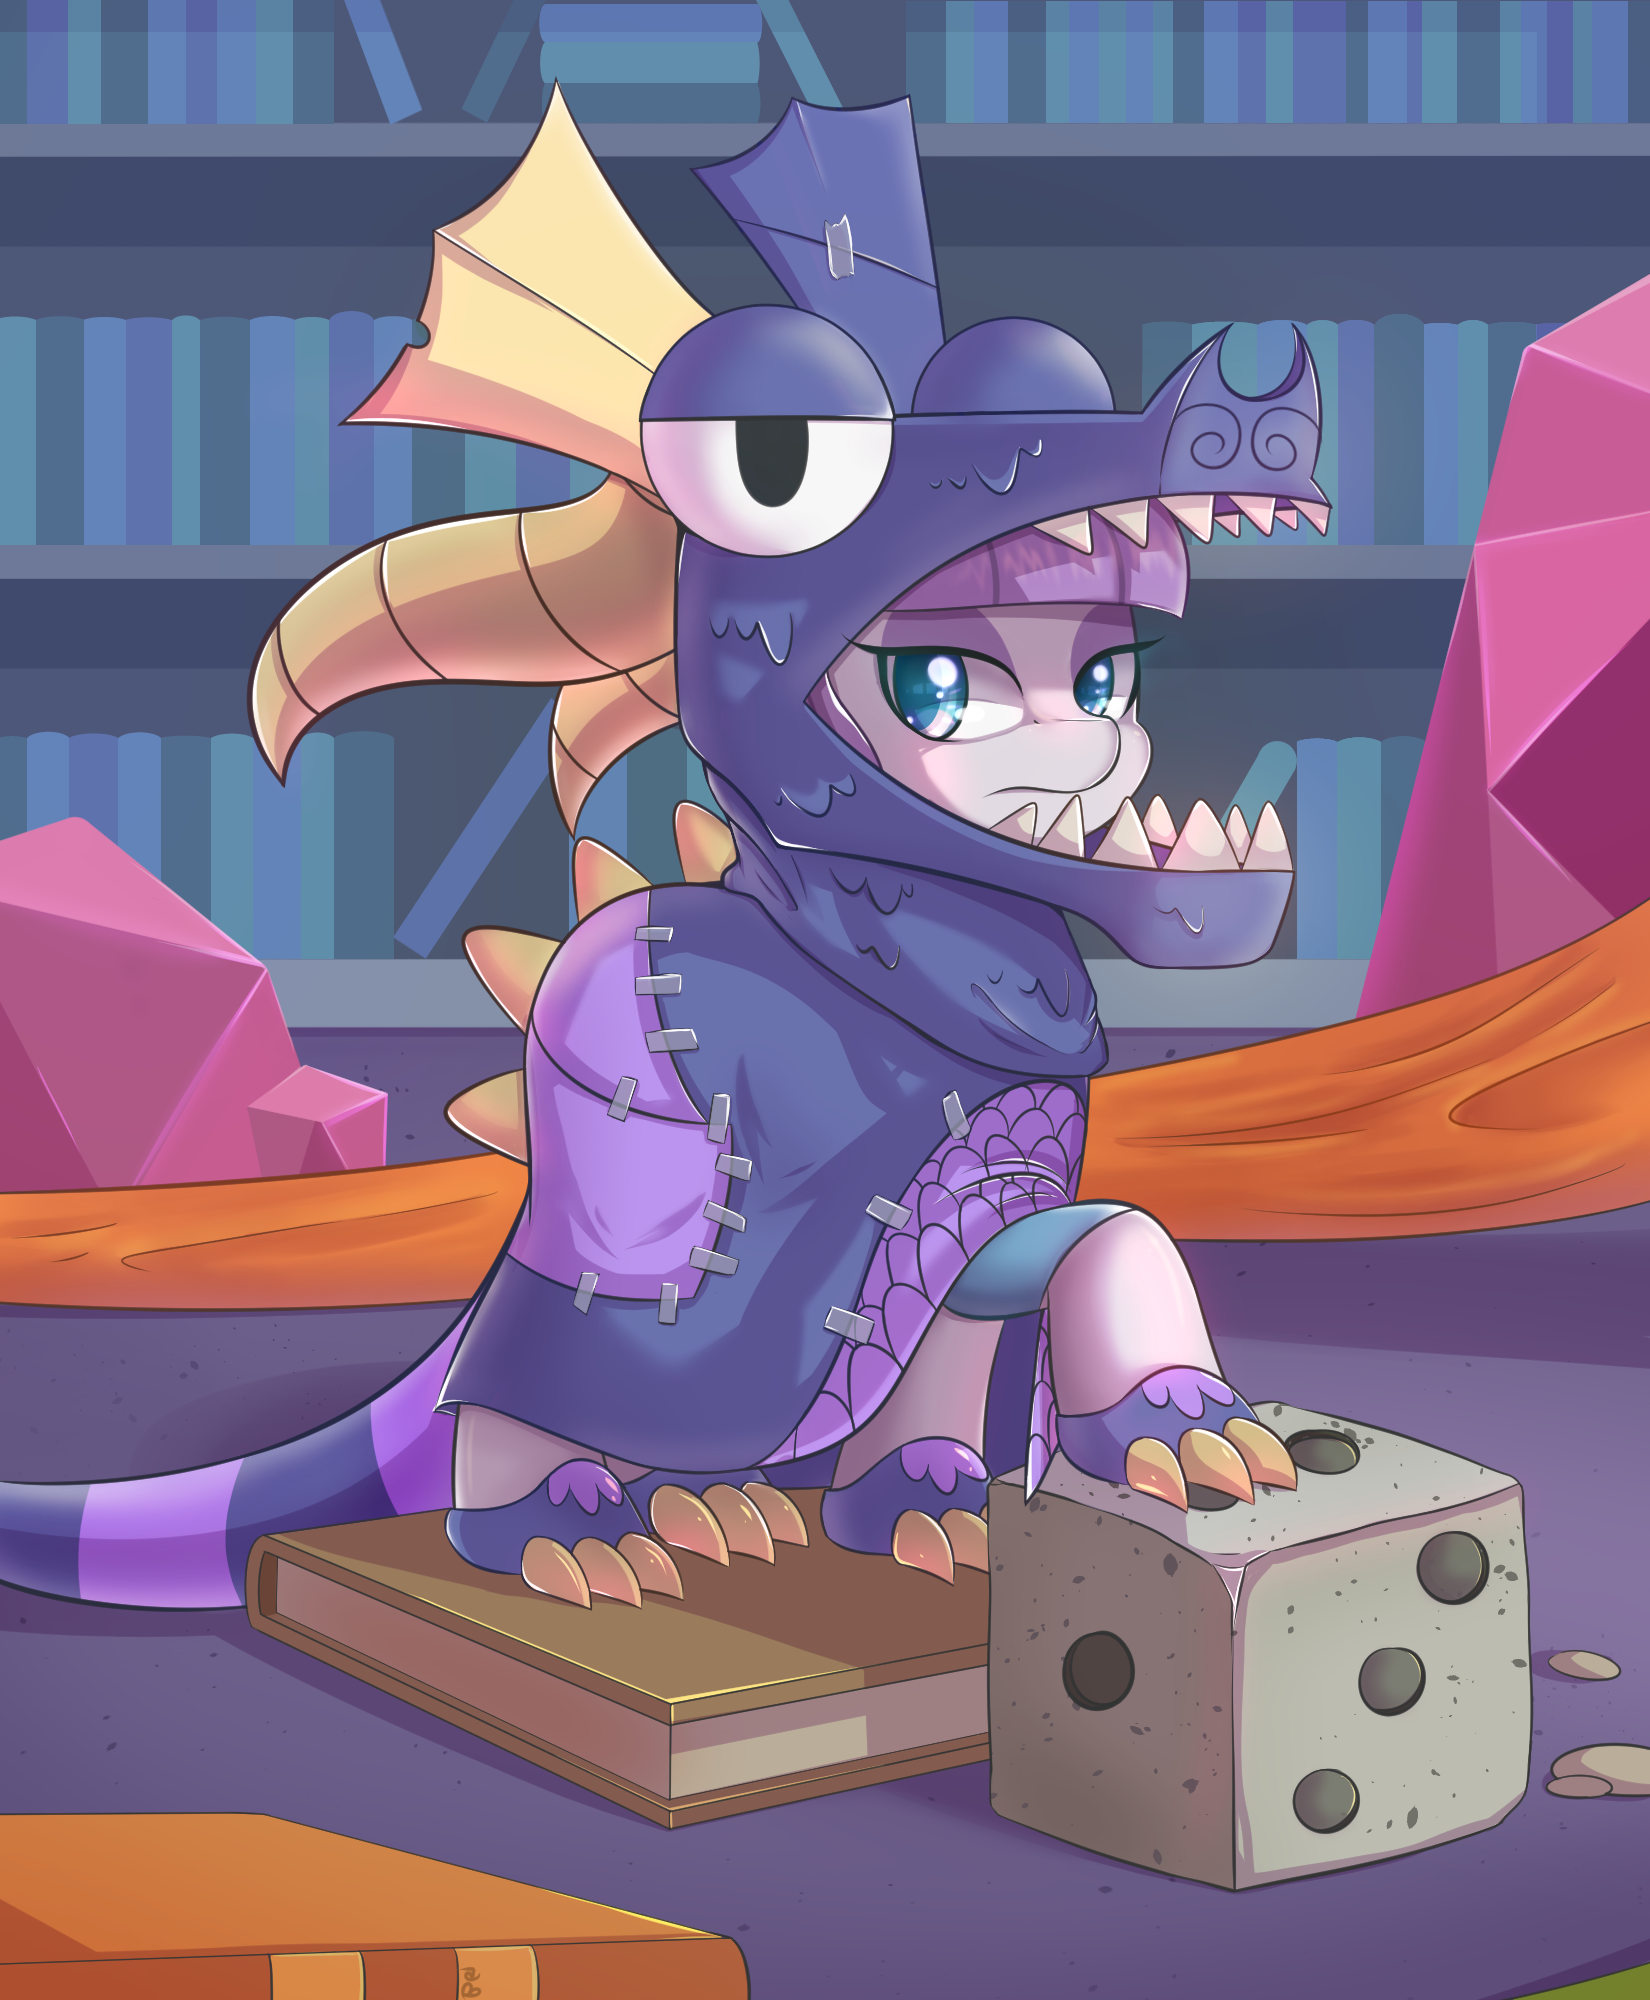 e926 2017 book costume dice dragon_costume earth_pony equine female friendship_is_magic hair hi_res horse inside library mammal maud_pie_(mlp) my_little_pony pony purple_hair solo solo_focus stone teal_eyes tikrs007_(bgstudio)